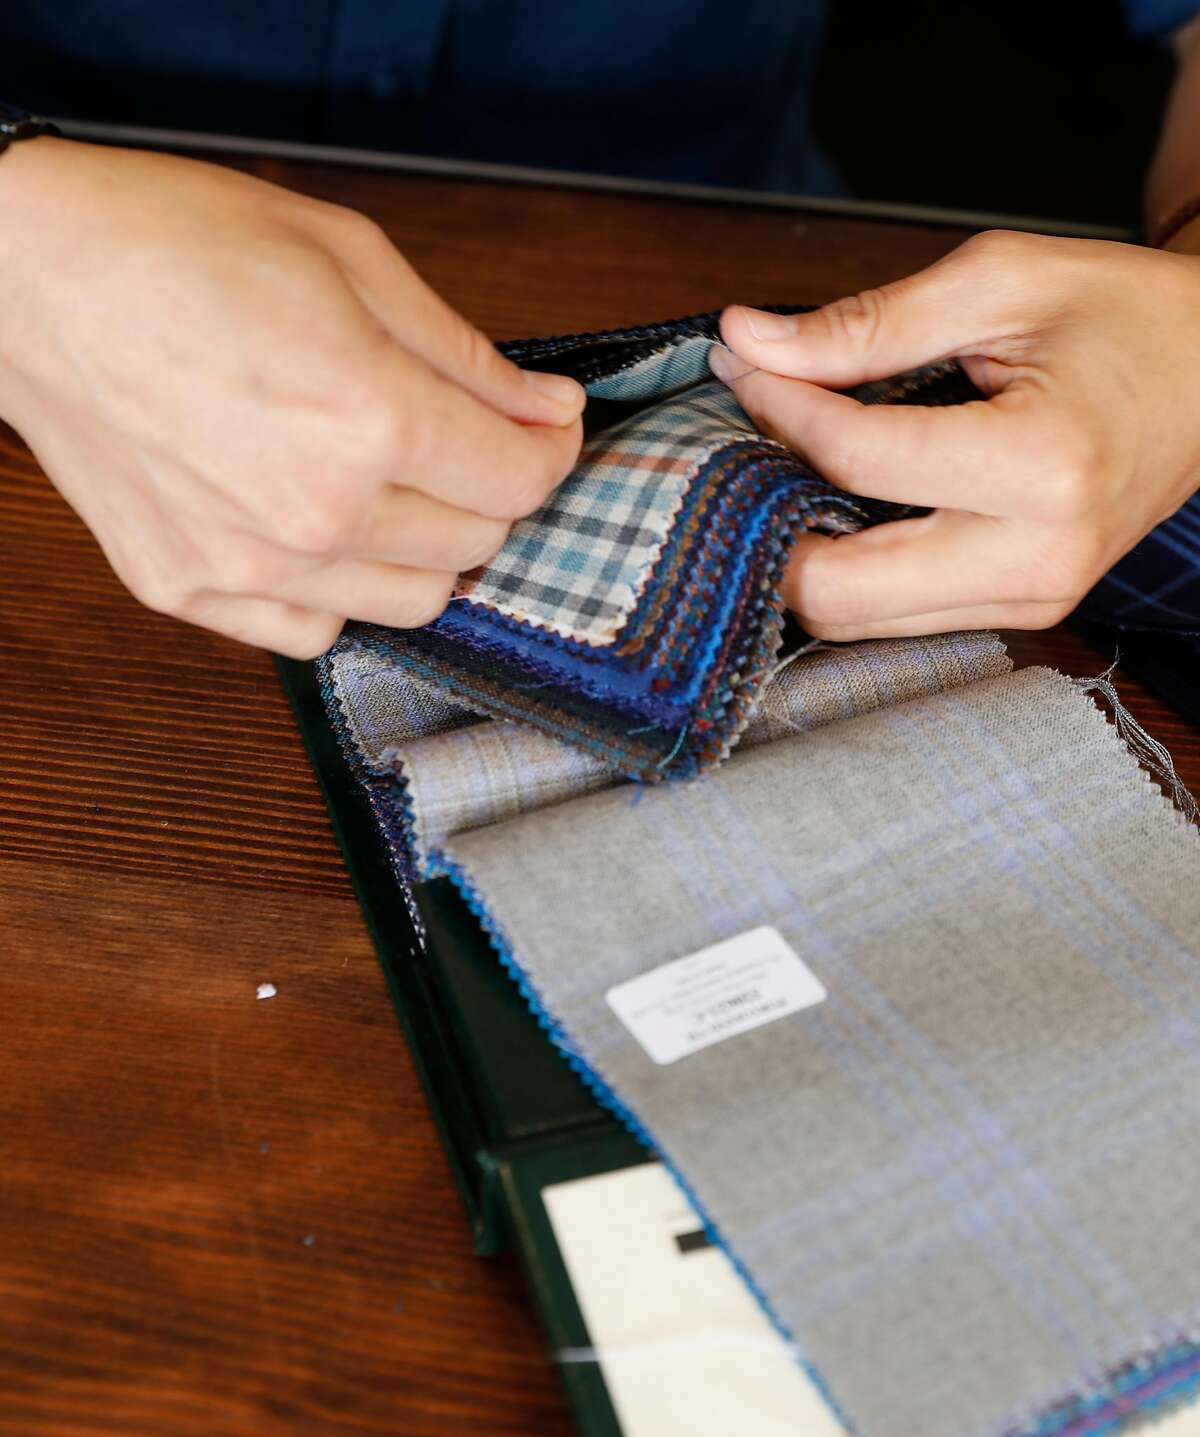 Riley Hewko goes through material swatches at Kipper Clothiers on Friday, May 25, 2018 in San Francisco, Calif.